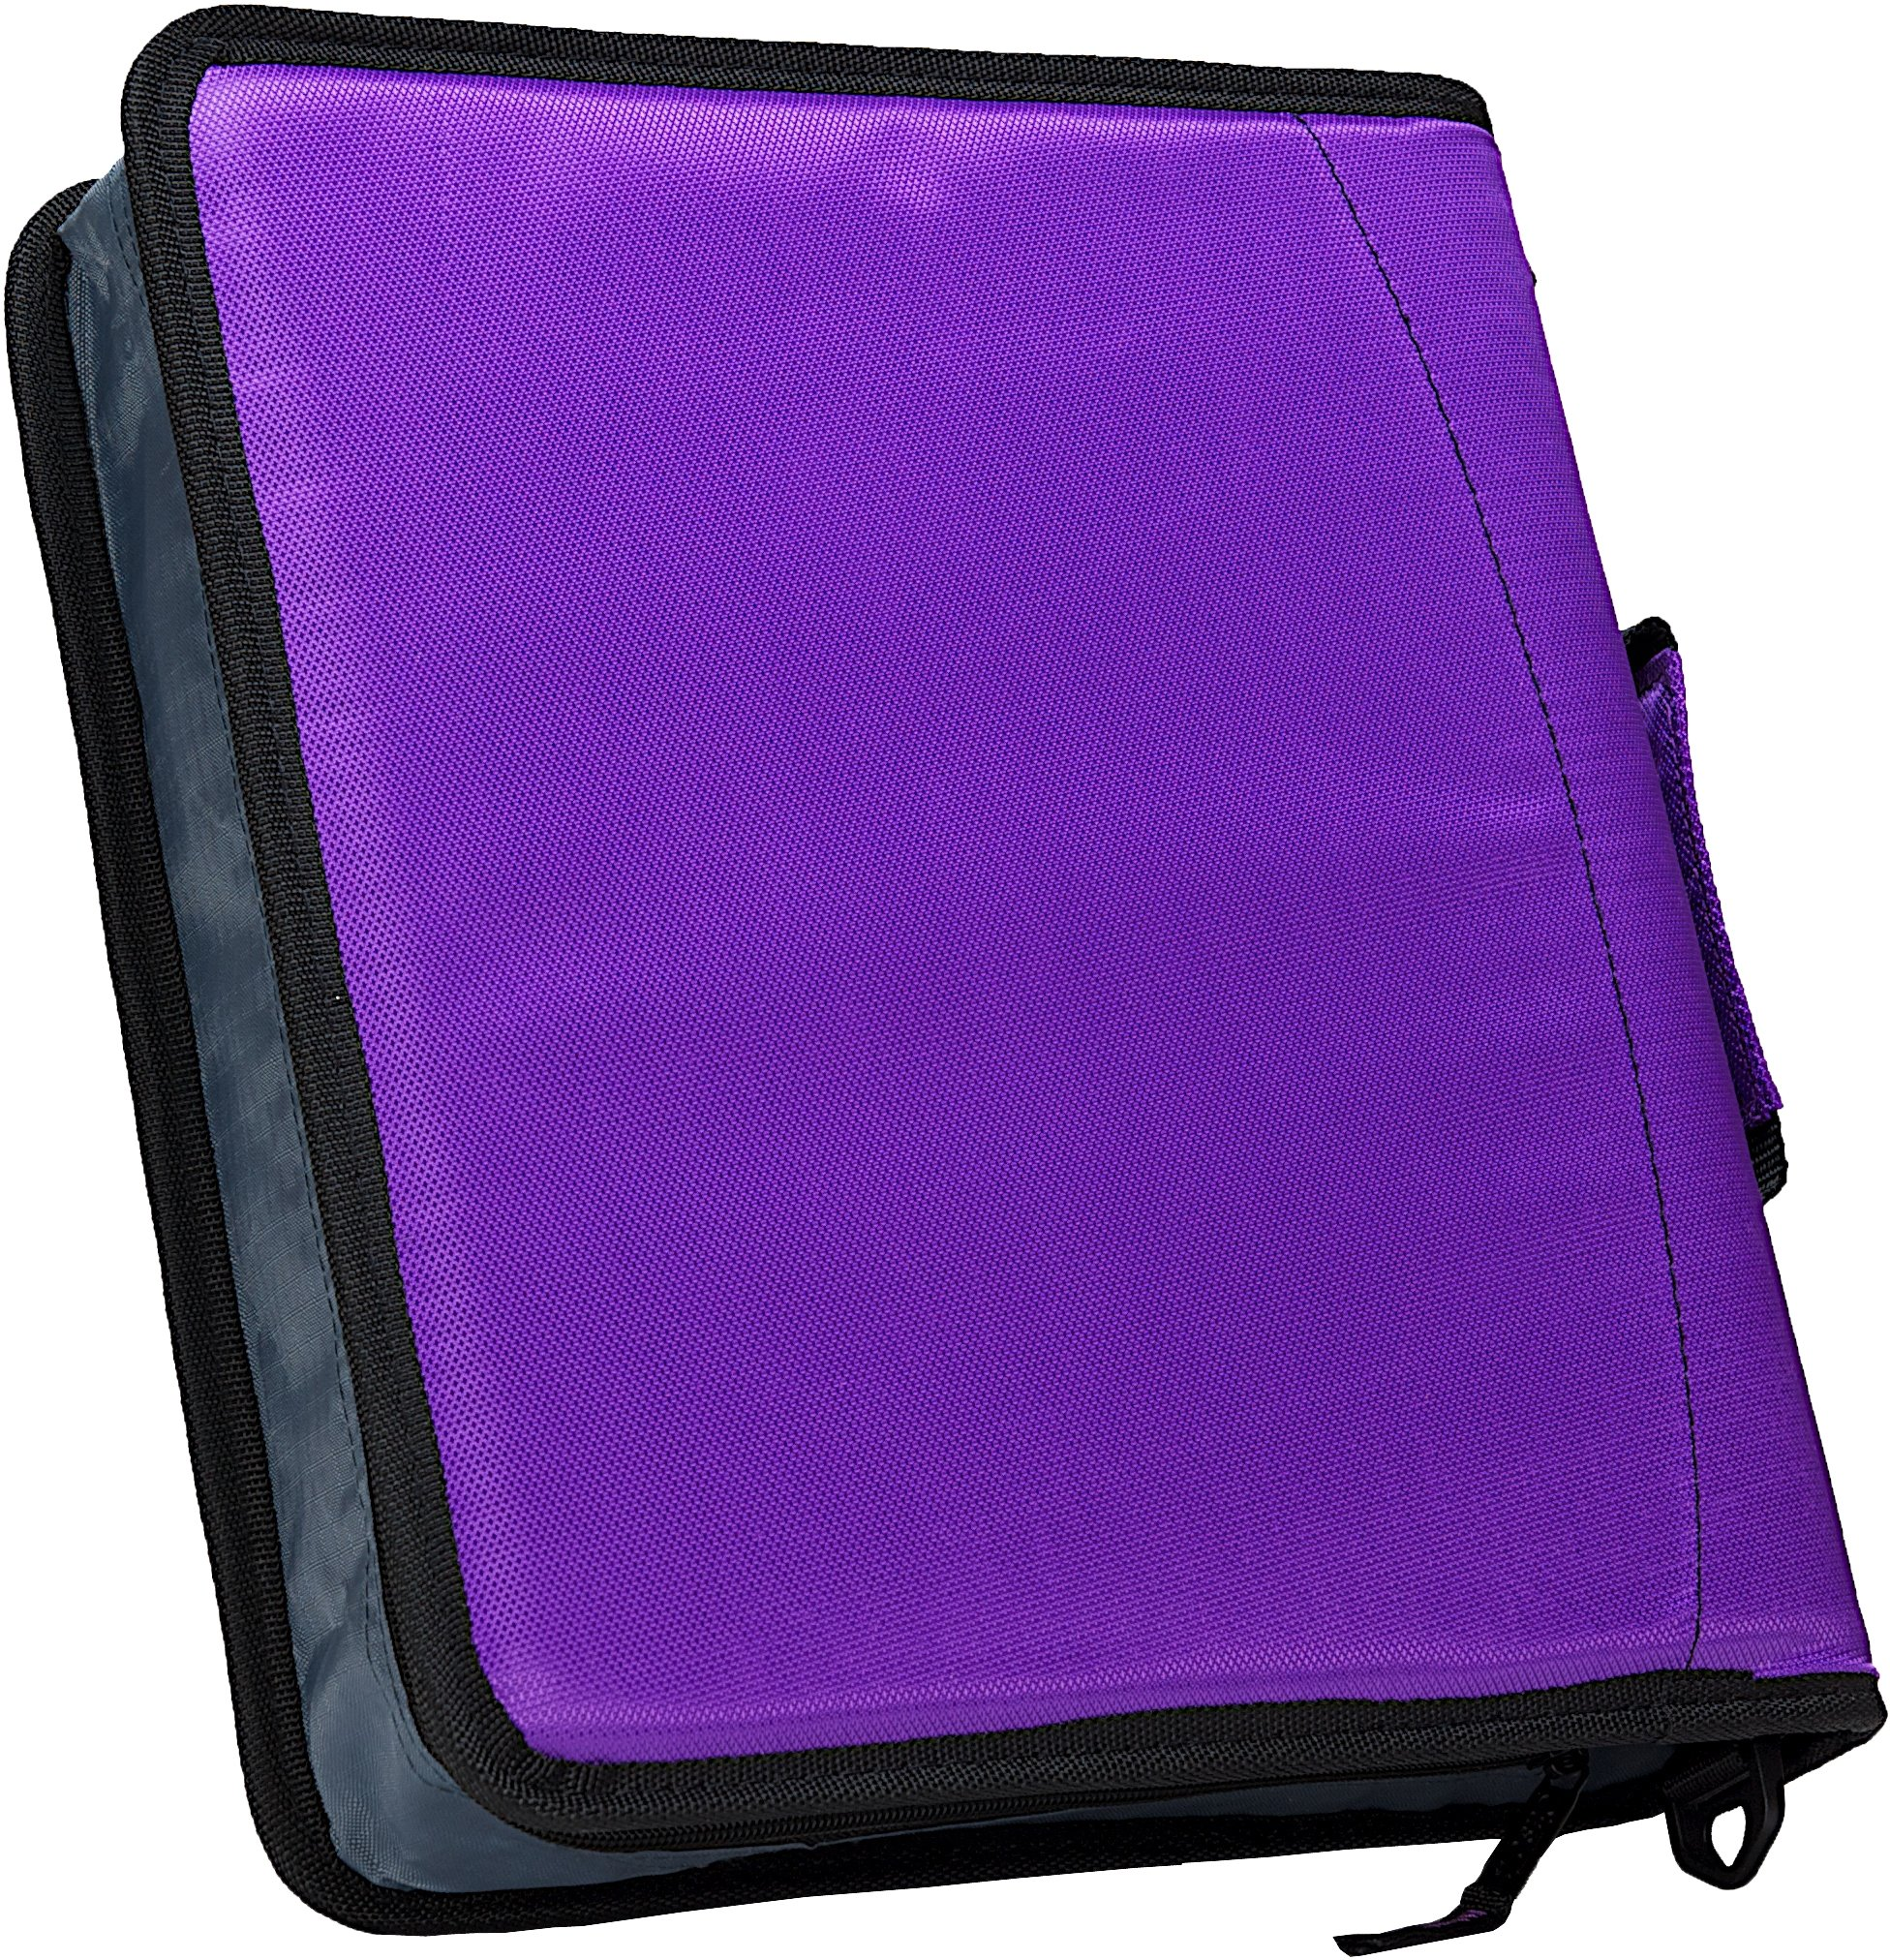 Case-it Sidekick 2-Inch O-Ring Zipper Binder with Removable Tab File, Purple, D-901-PUR by Case-It (Image #8)